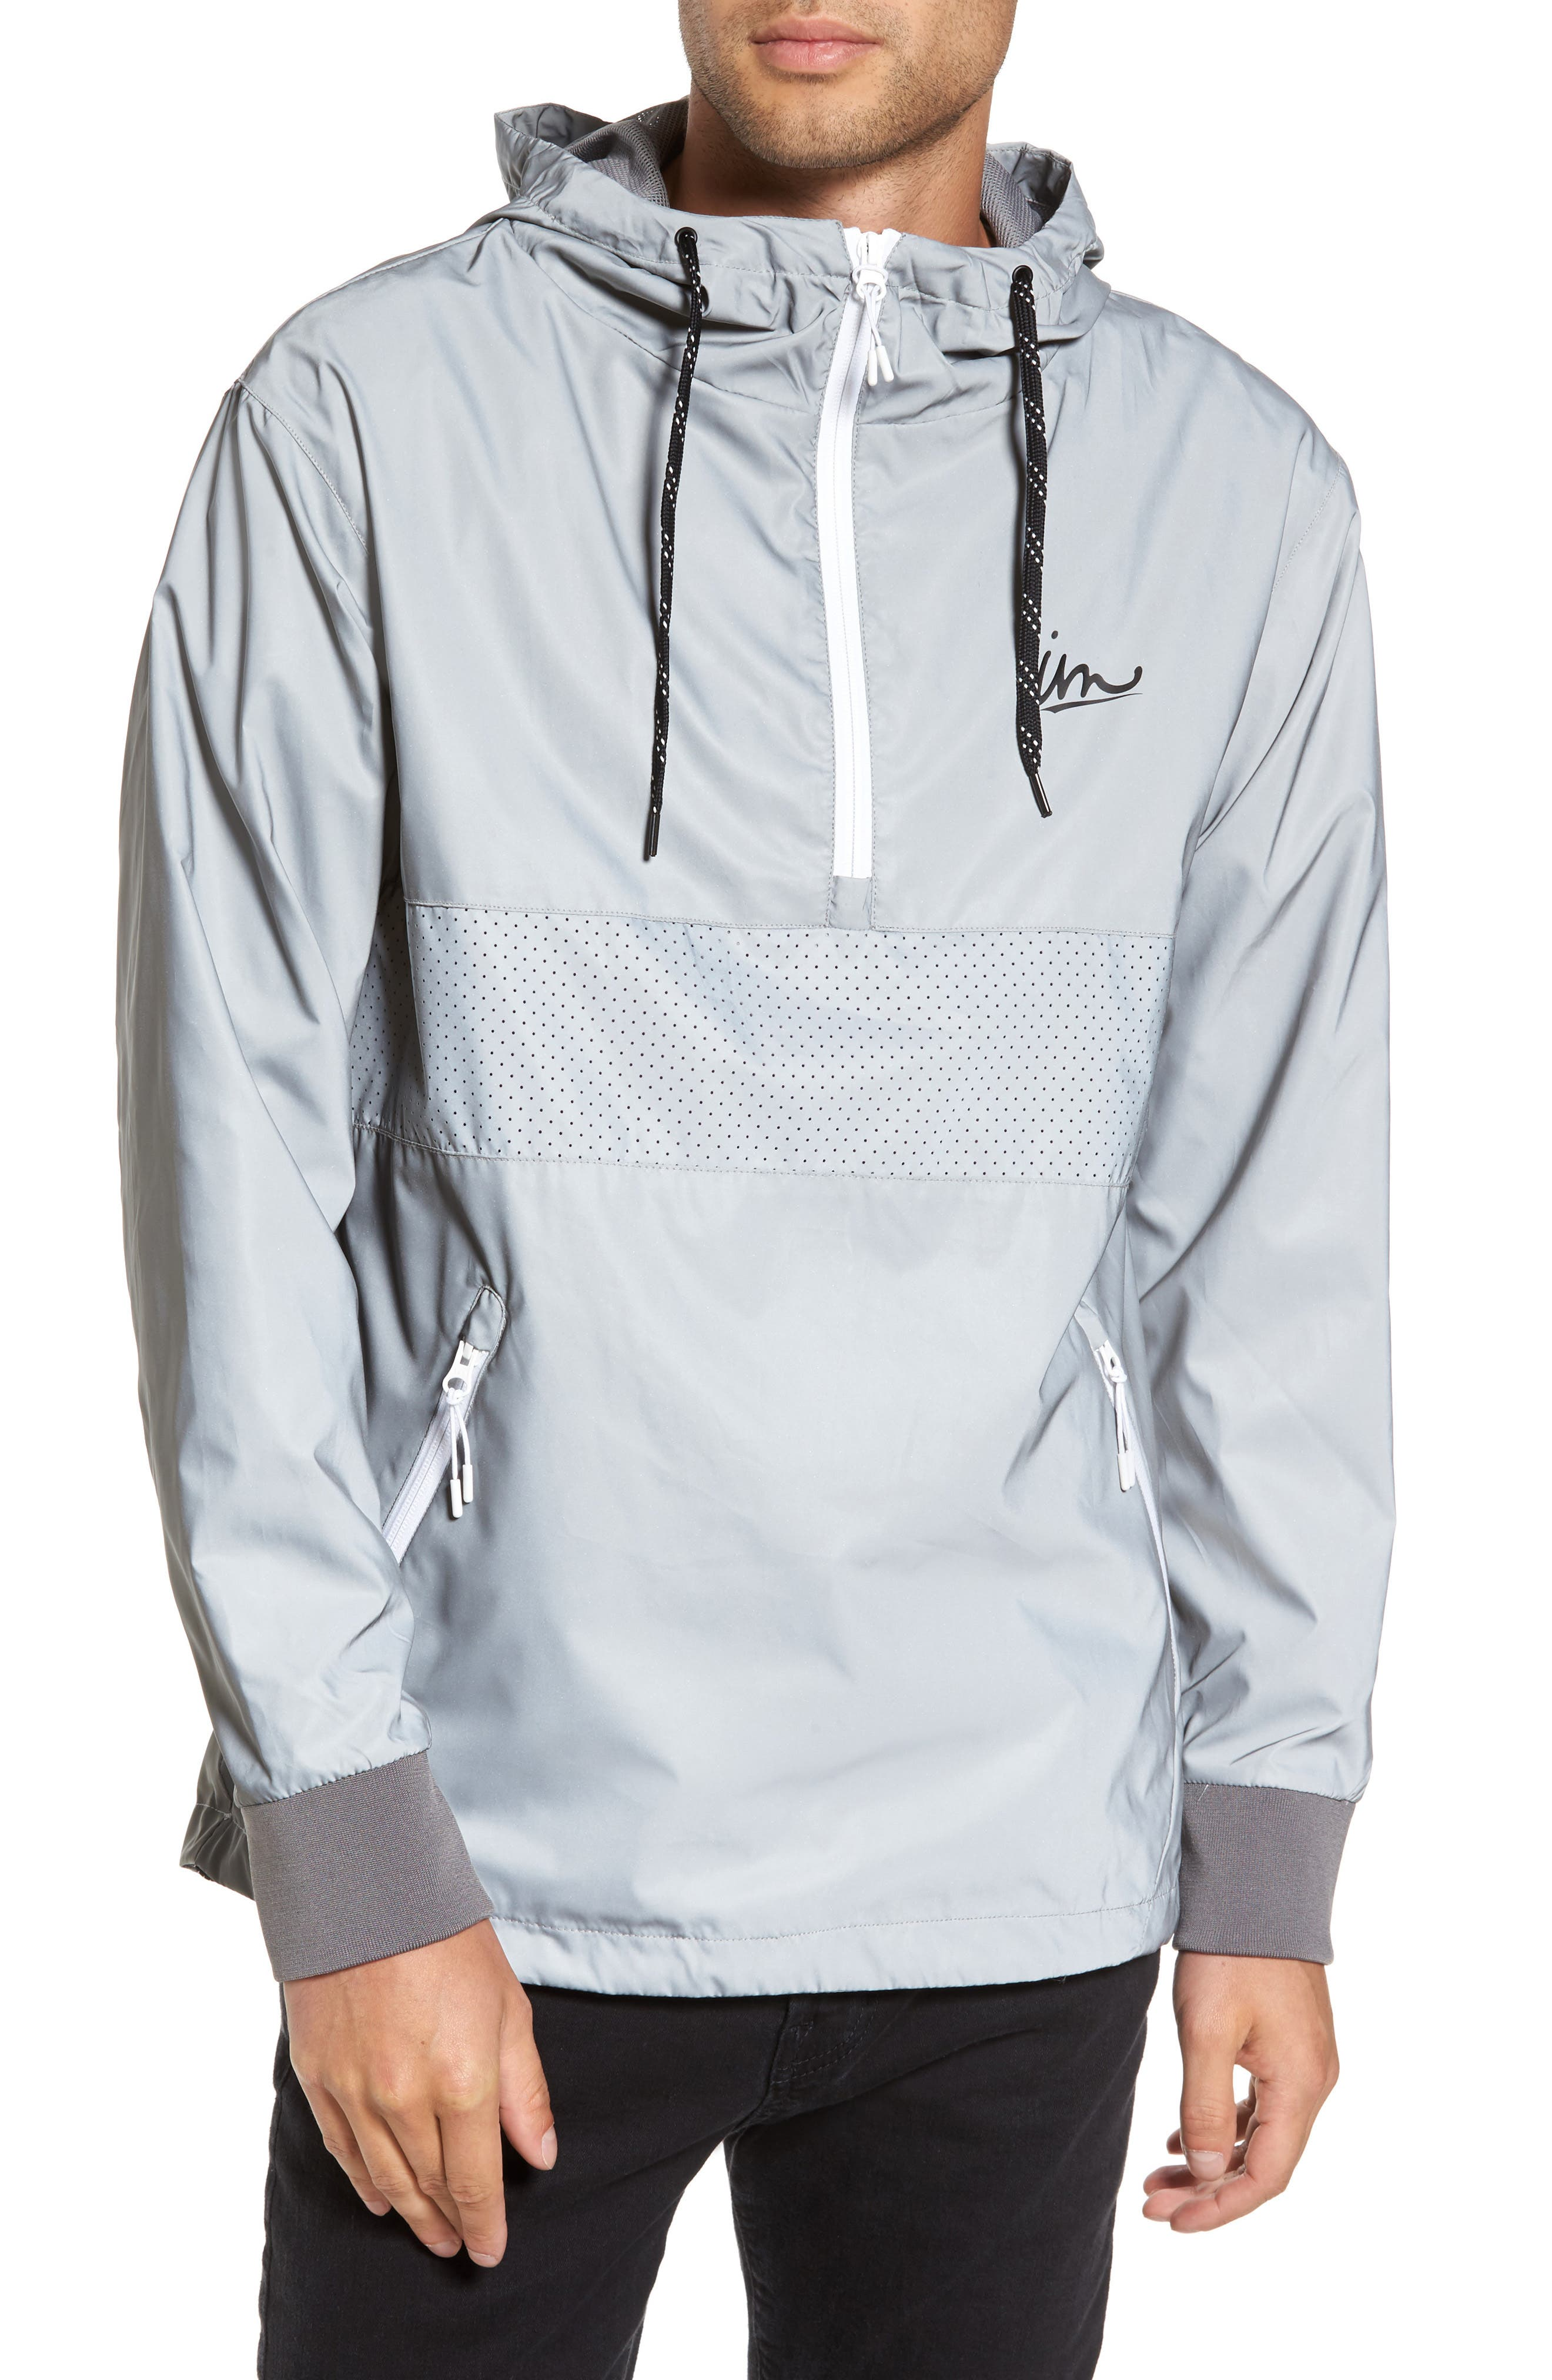 Main Image - Imperial Motion Helix Reflective Anorak